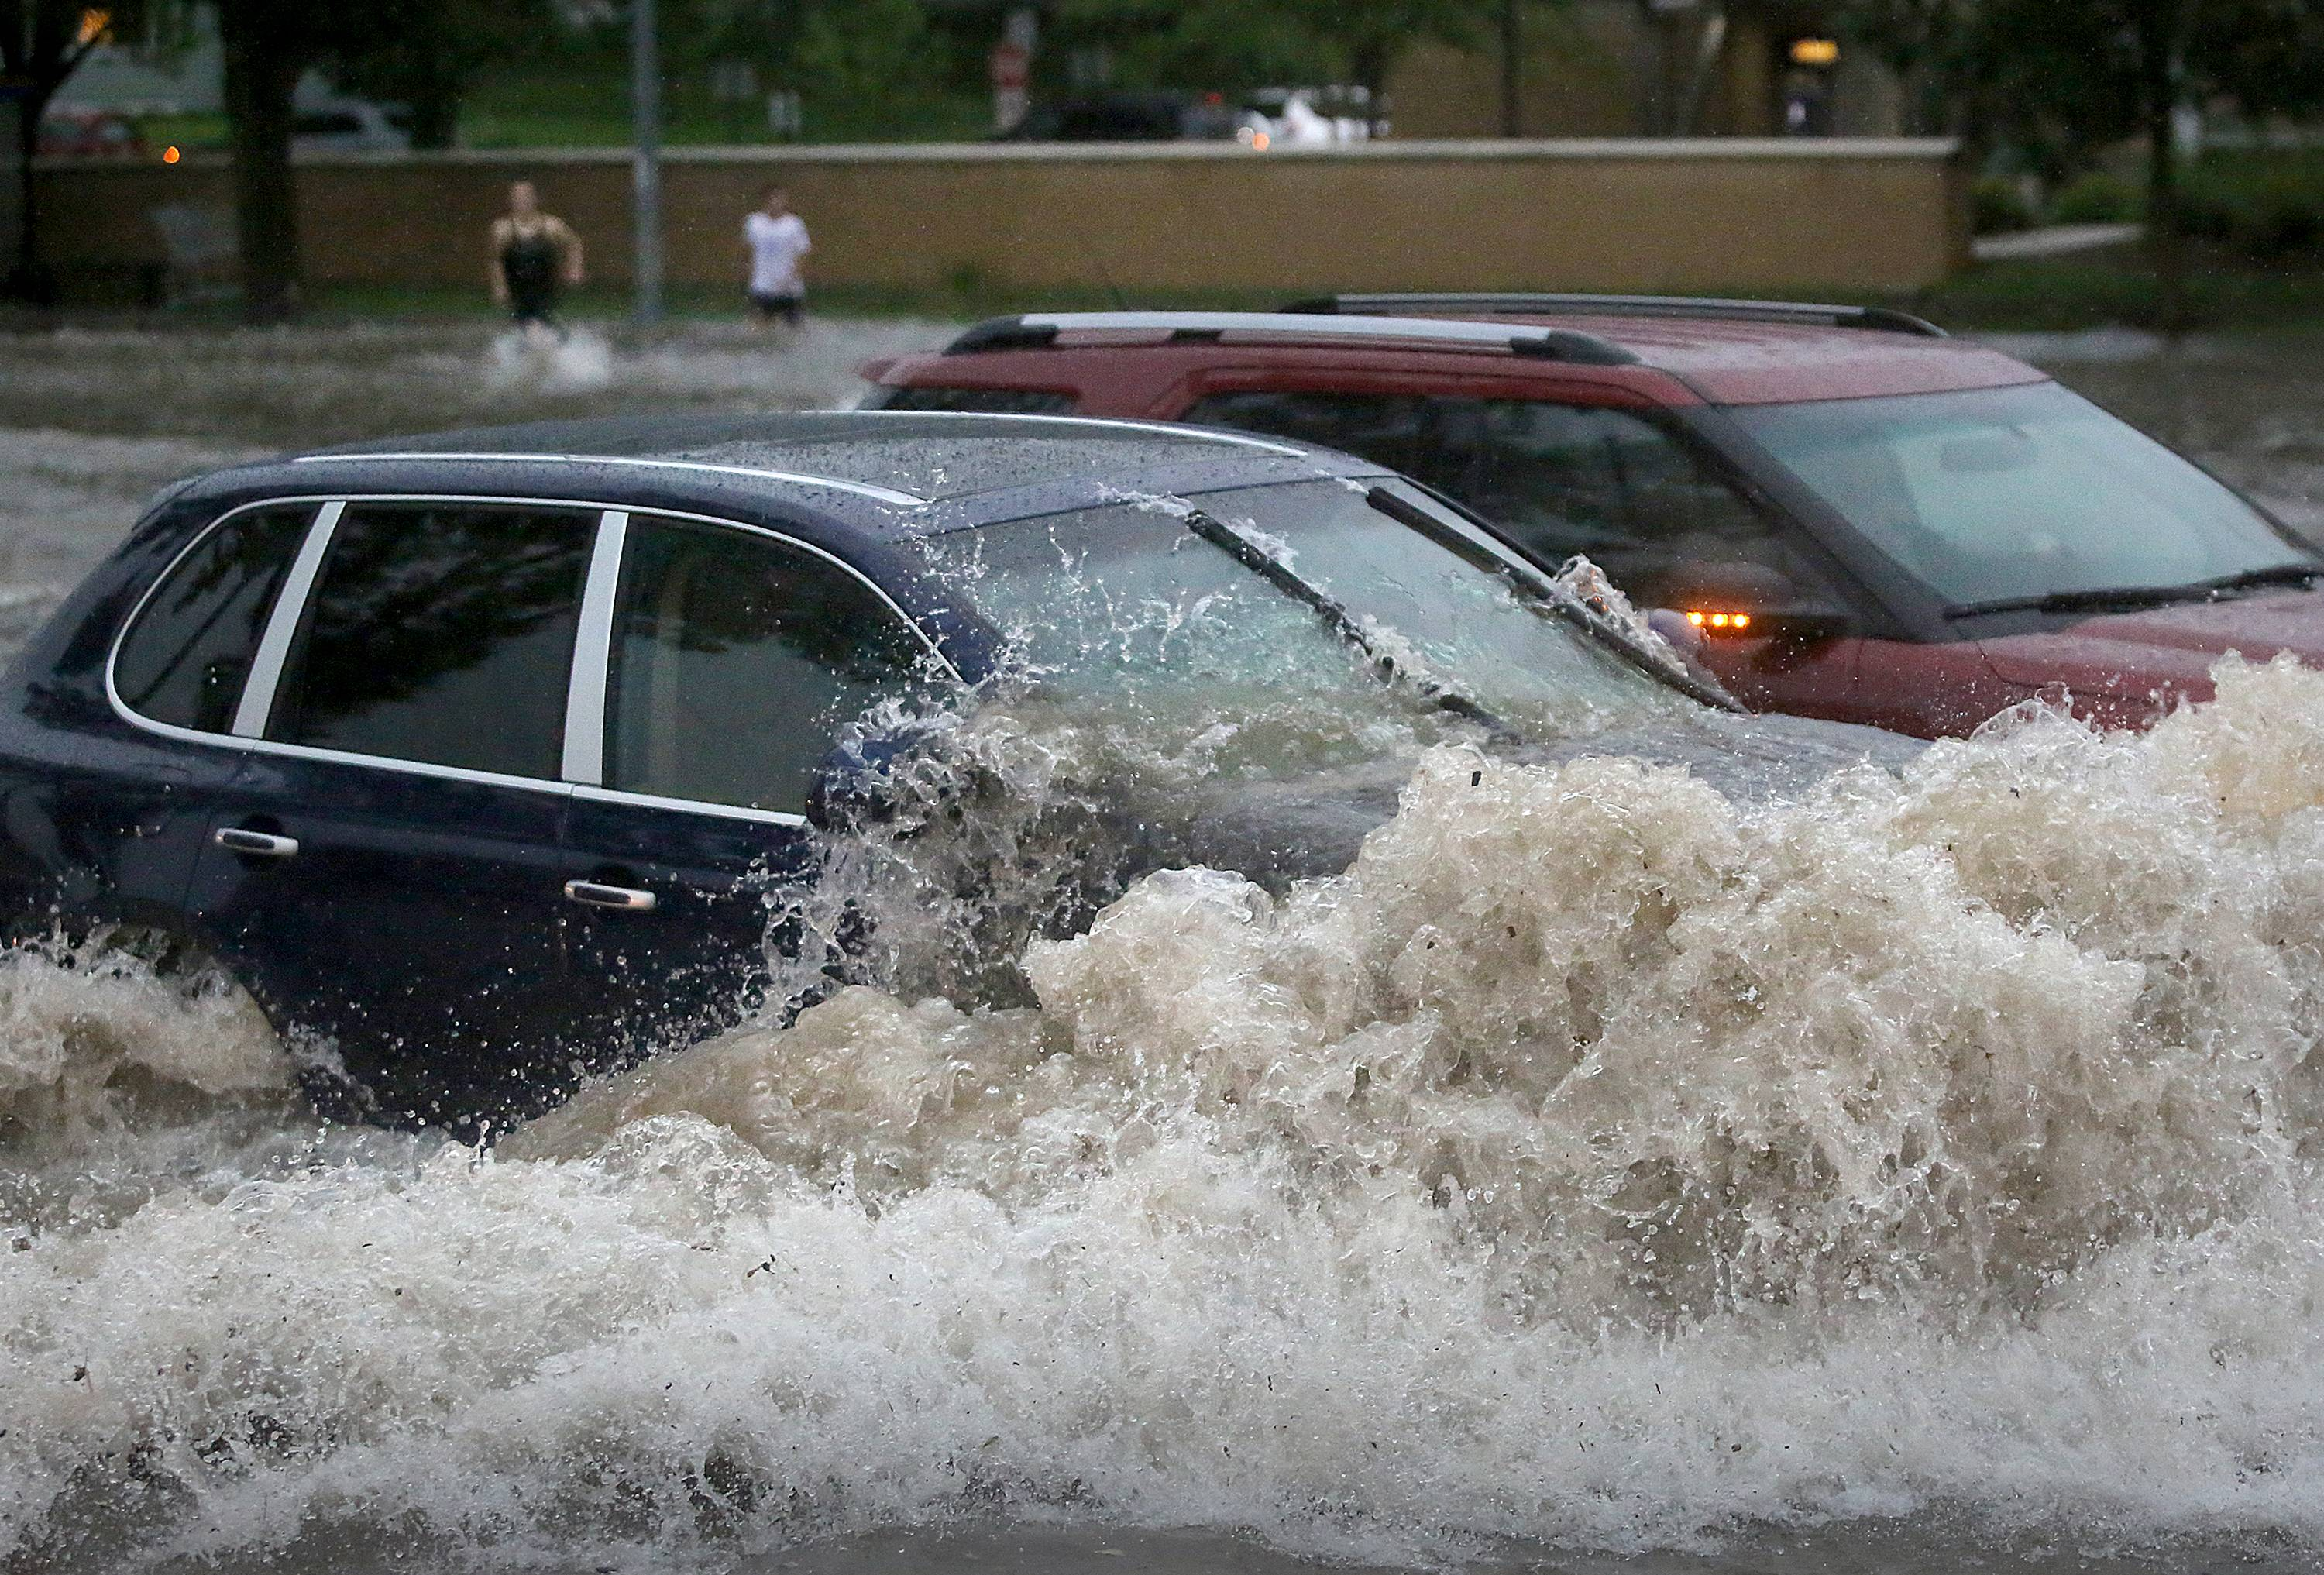 A car attempts to make its way through the flooded intersection of University Boulevard and North Midvale Road in Madison, Wis., after heavy rain moved through the area Monday. Severe thunderstorms packing high winds and heavy rain have downed trees and power lines all across southern Wisconsin.